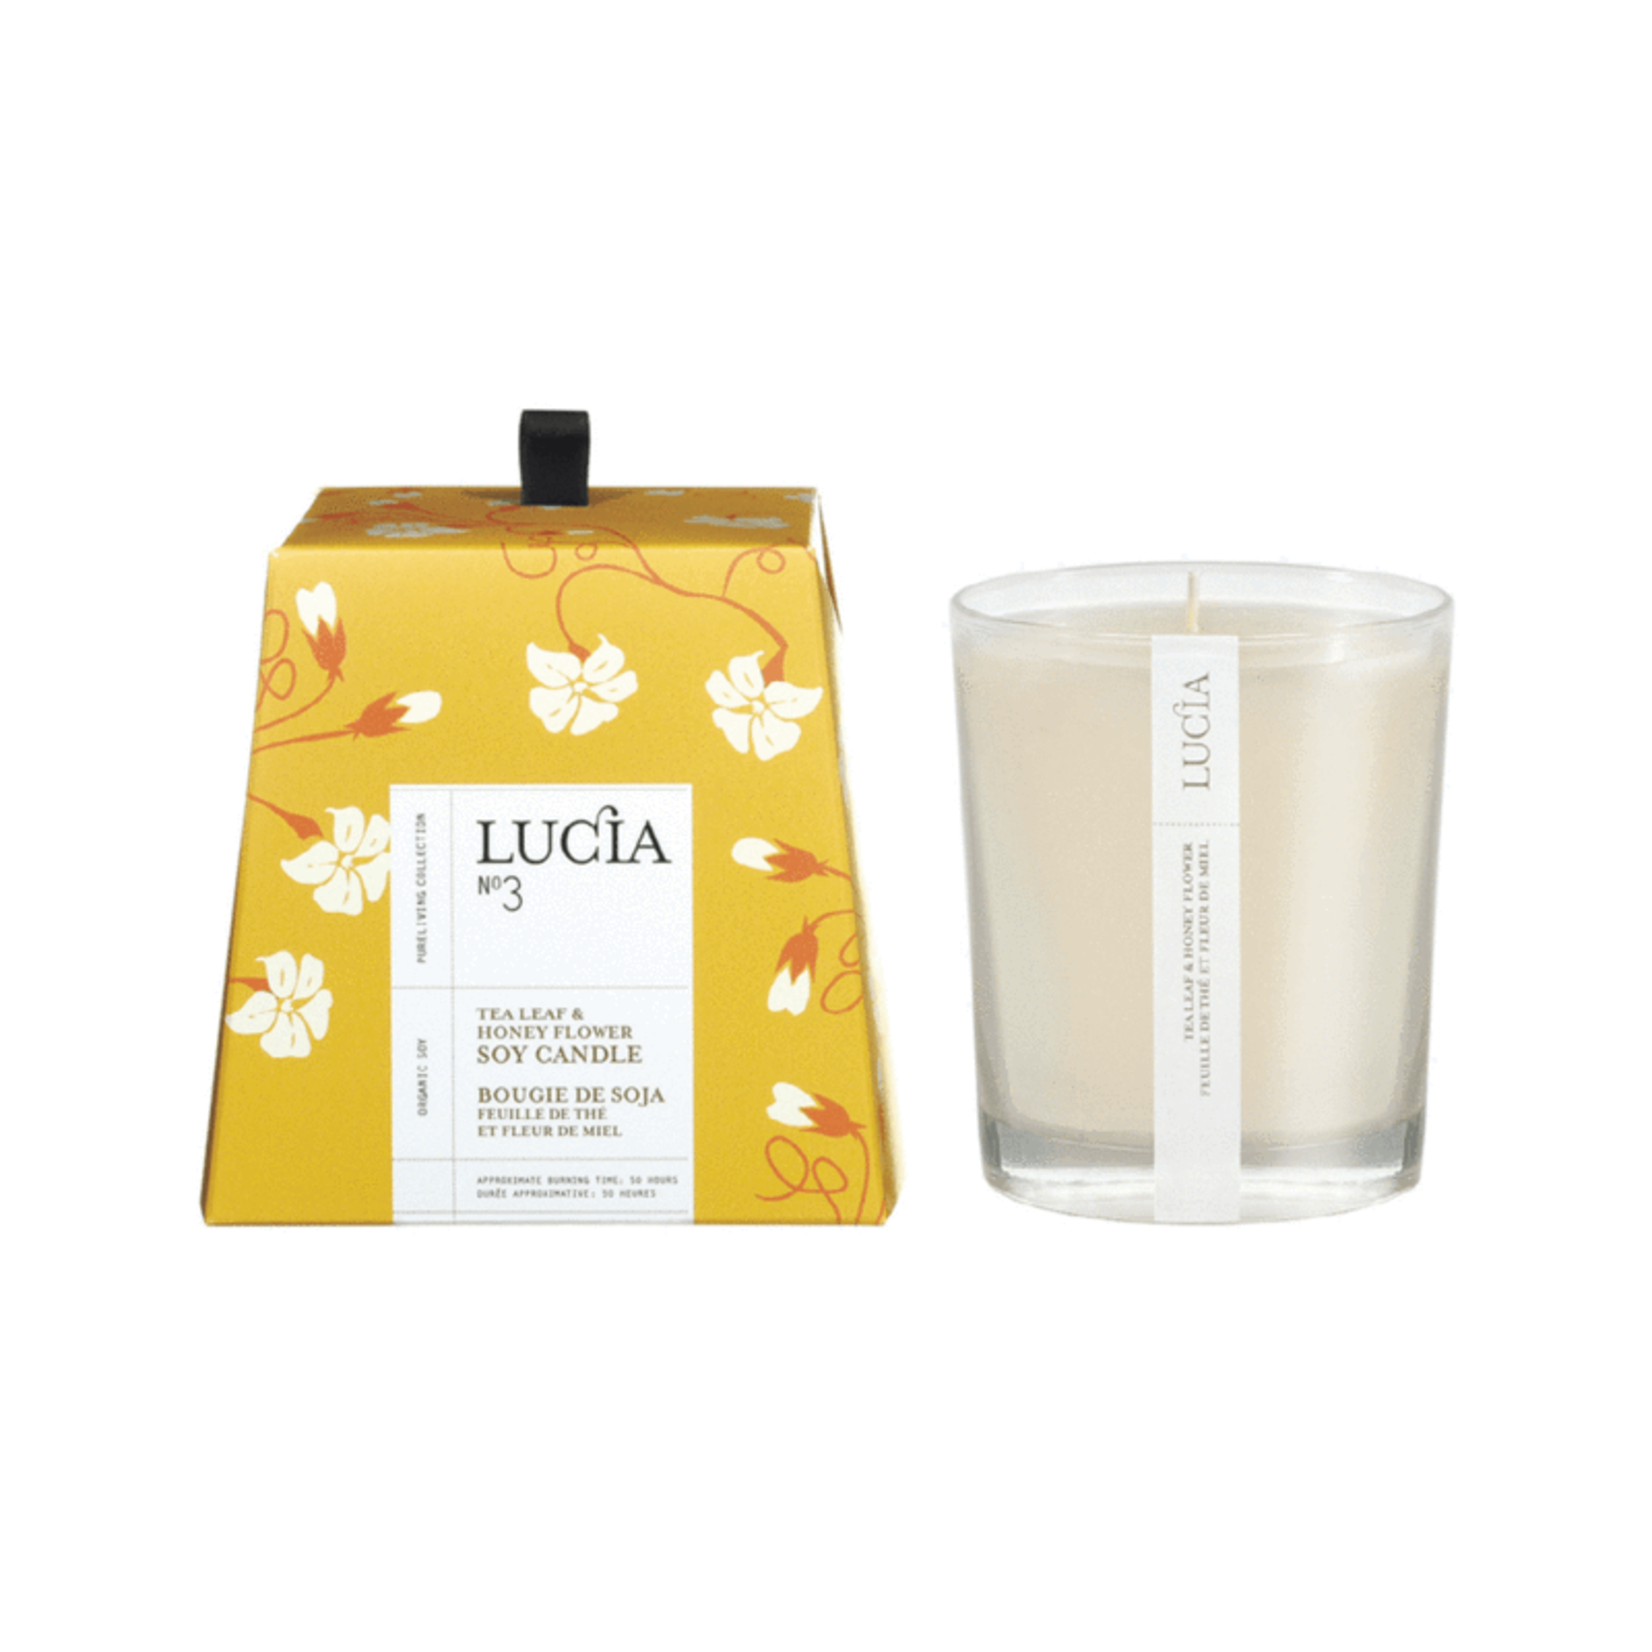 Lucia LUCIA Bougie 50H no3